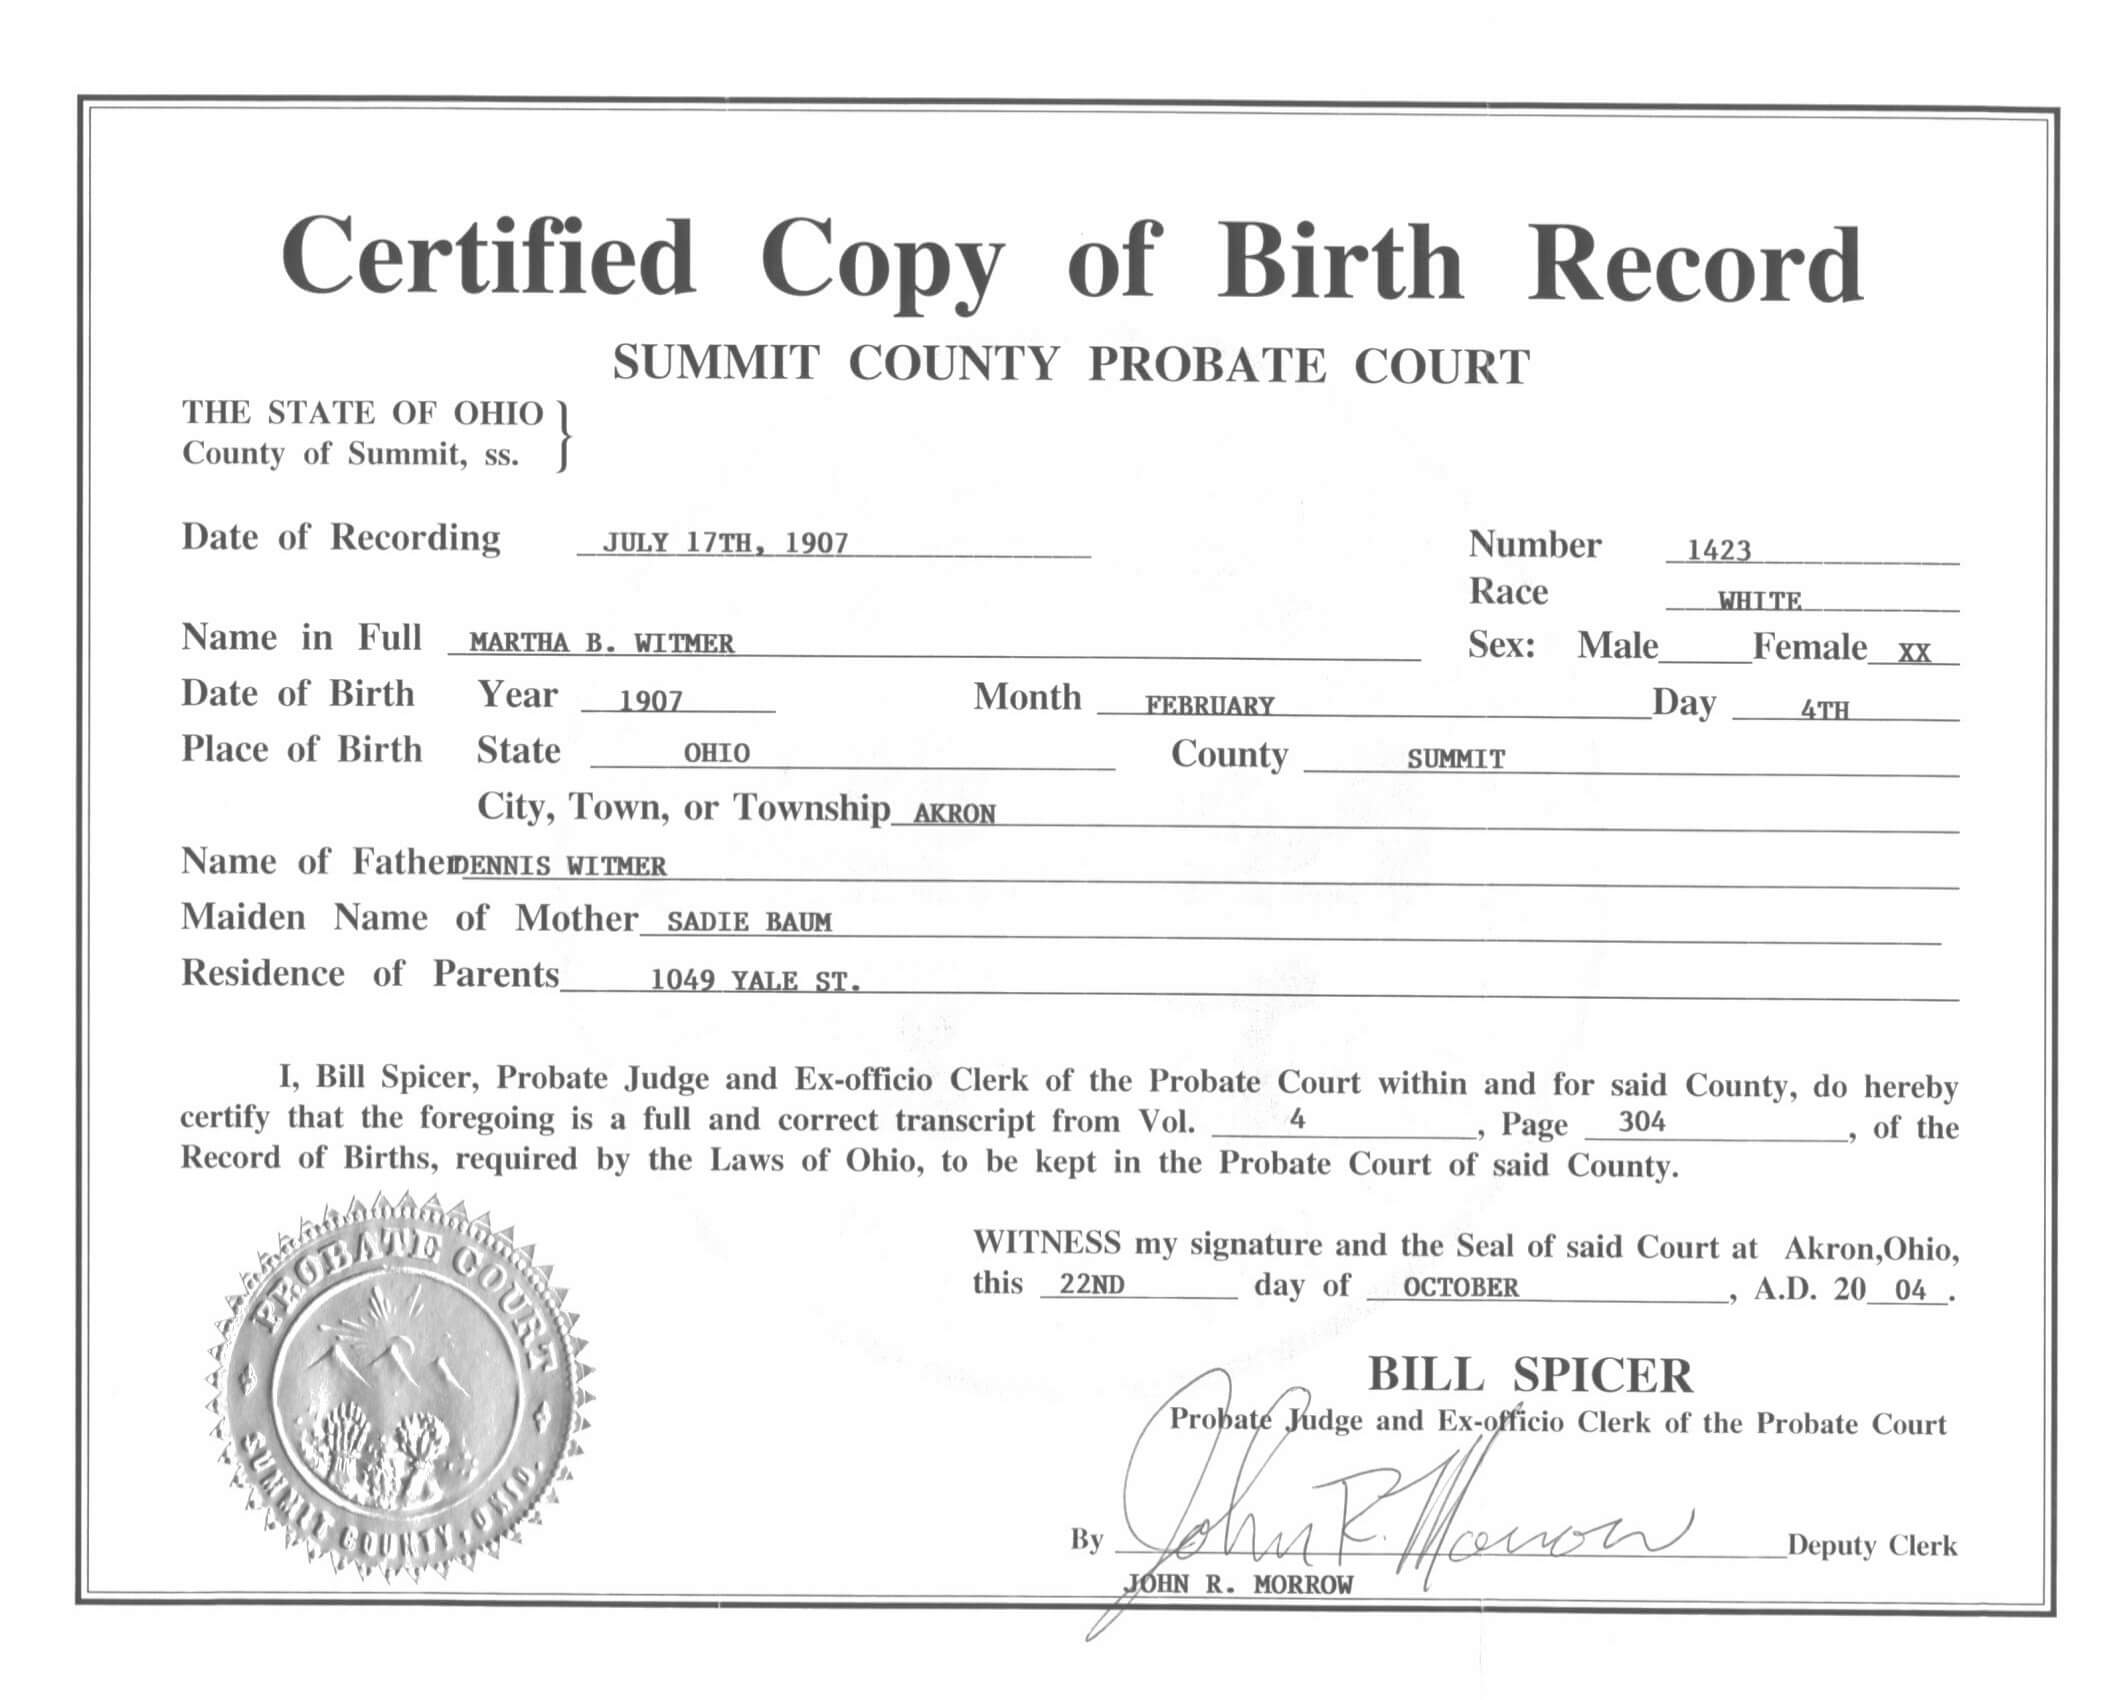 Live Birth Certificate Debt Loan Payoff Of Template in Official Birth Certificate Template